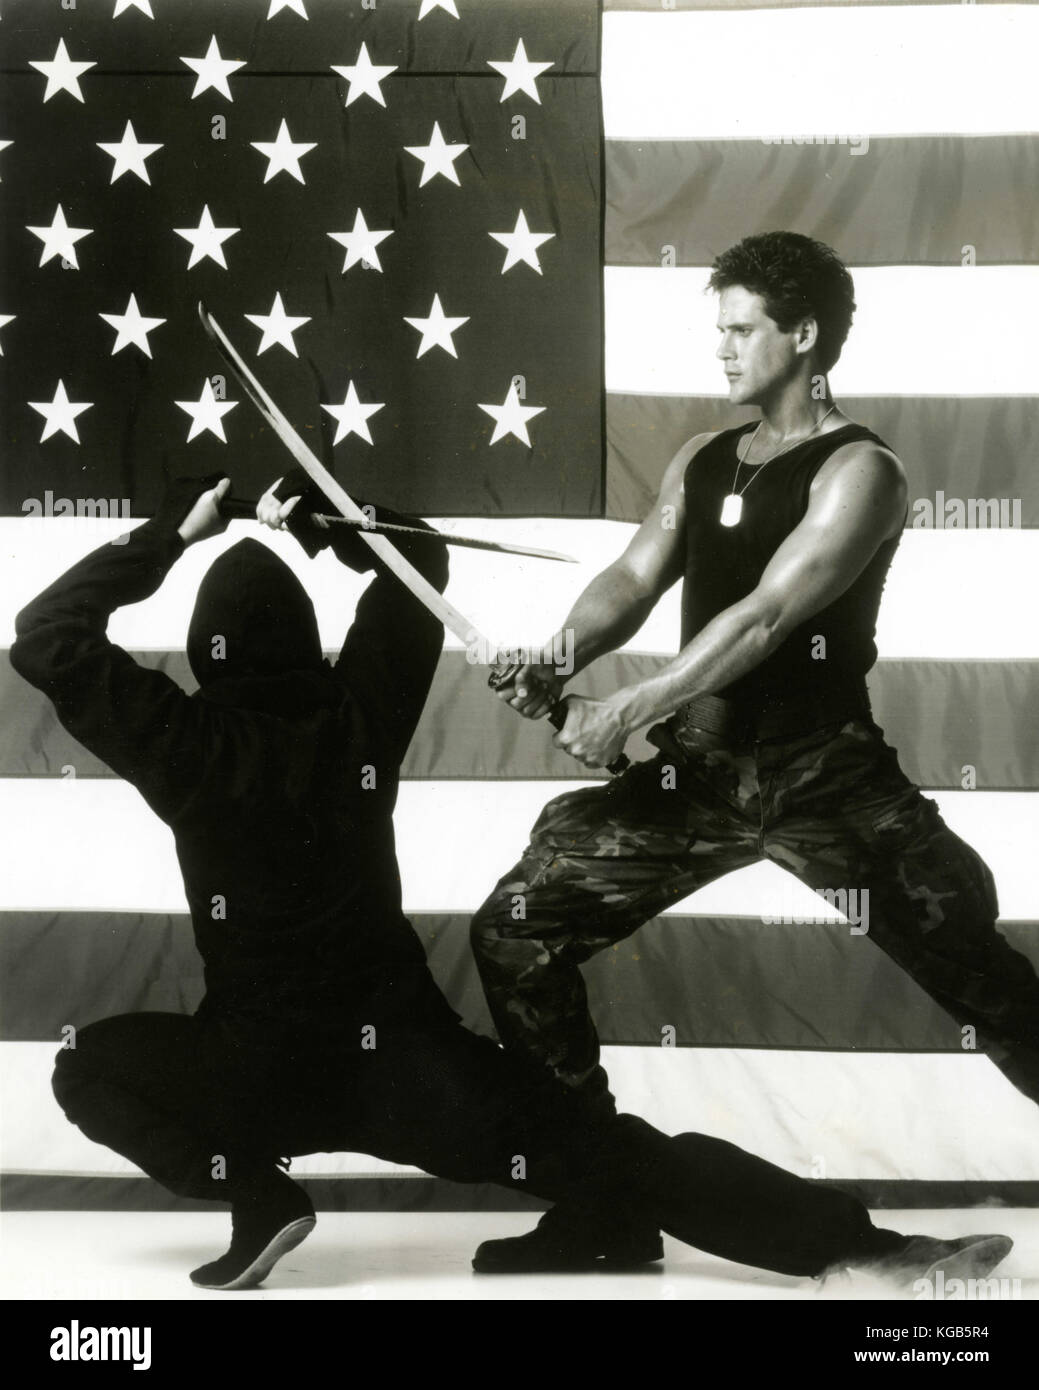 Actor Michael Dudikoff in the movie American Ninja, 1985 - Stock Image